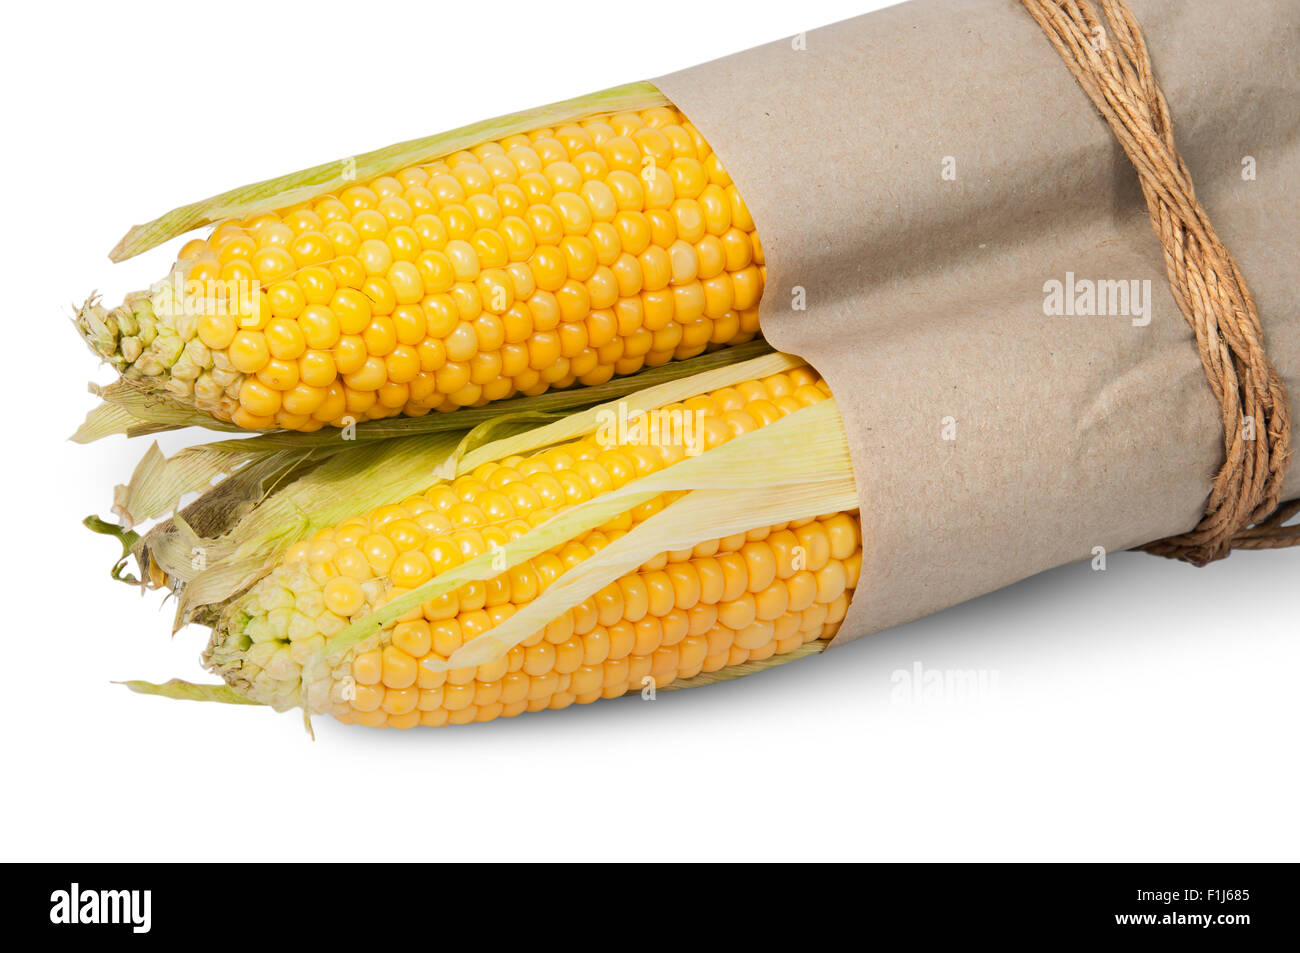 Several corn cob in paper bag tied with rope isolated on white background - Stock Image